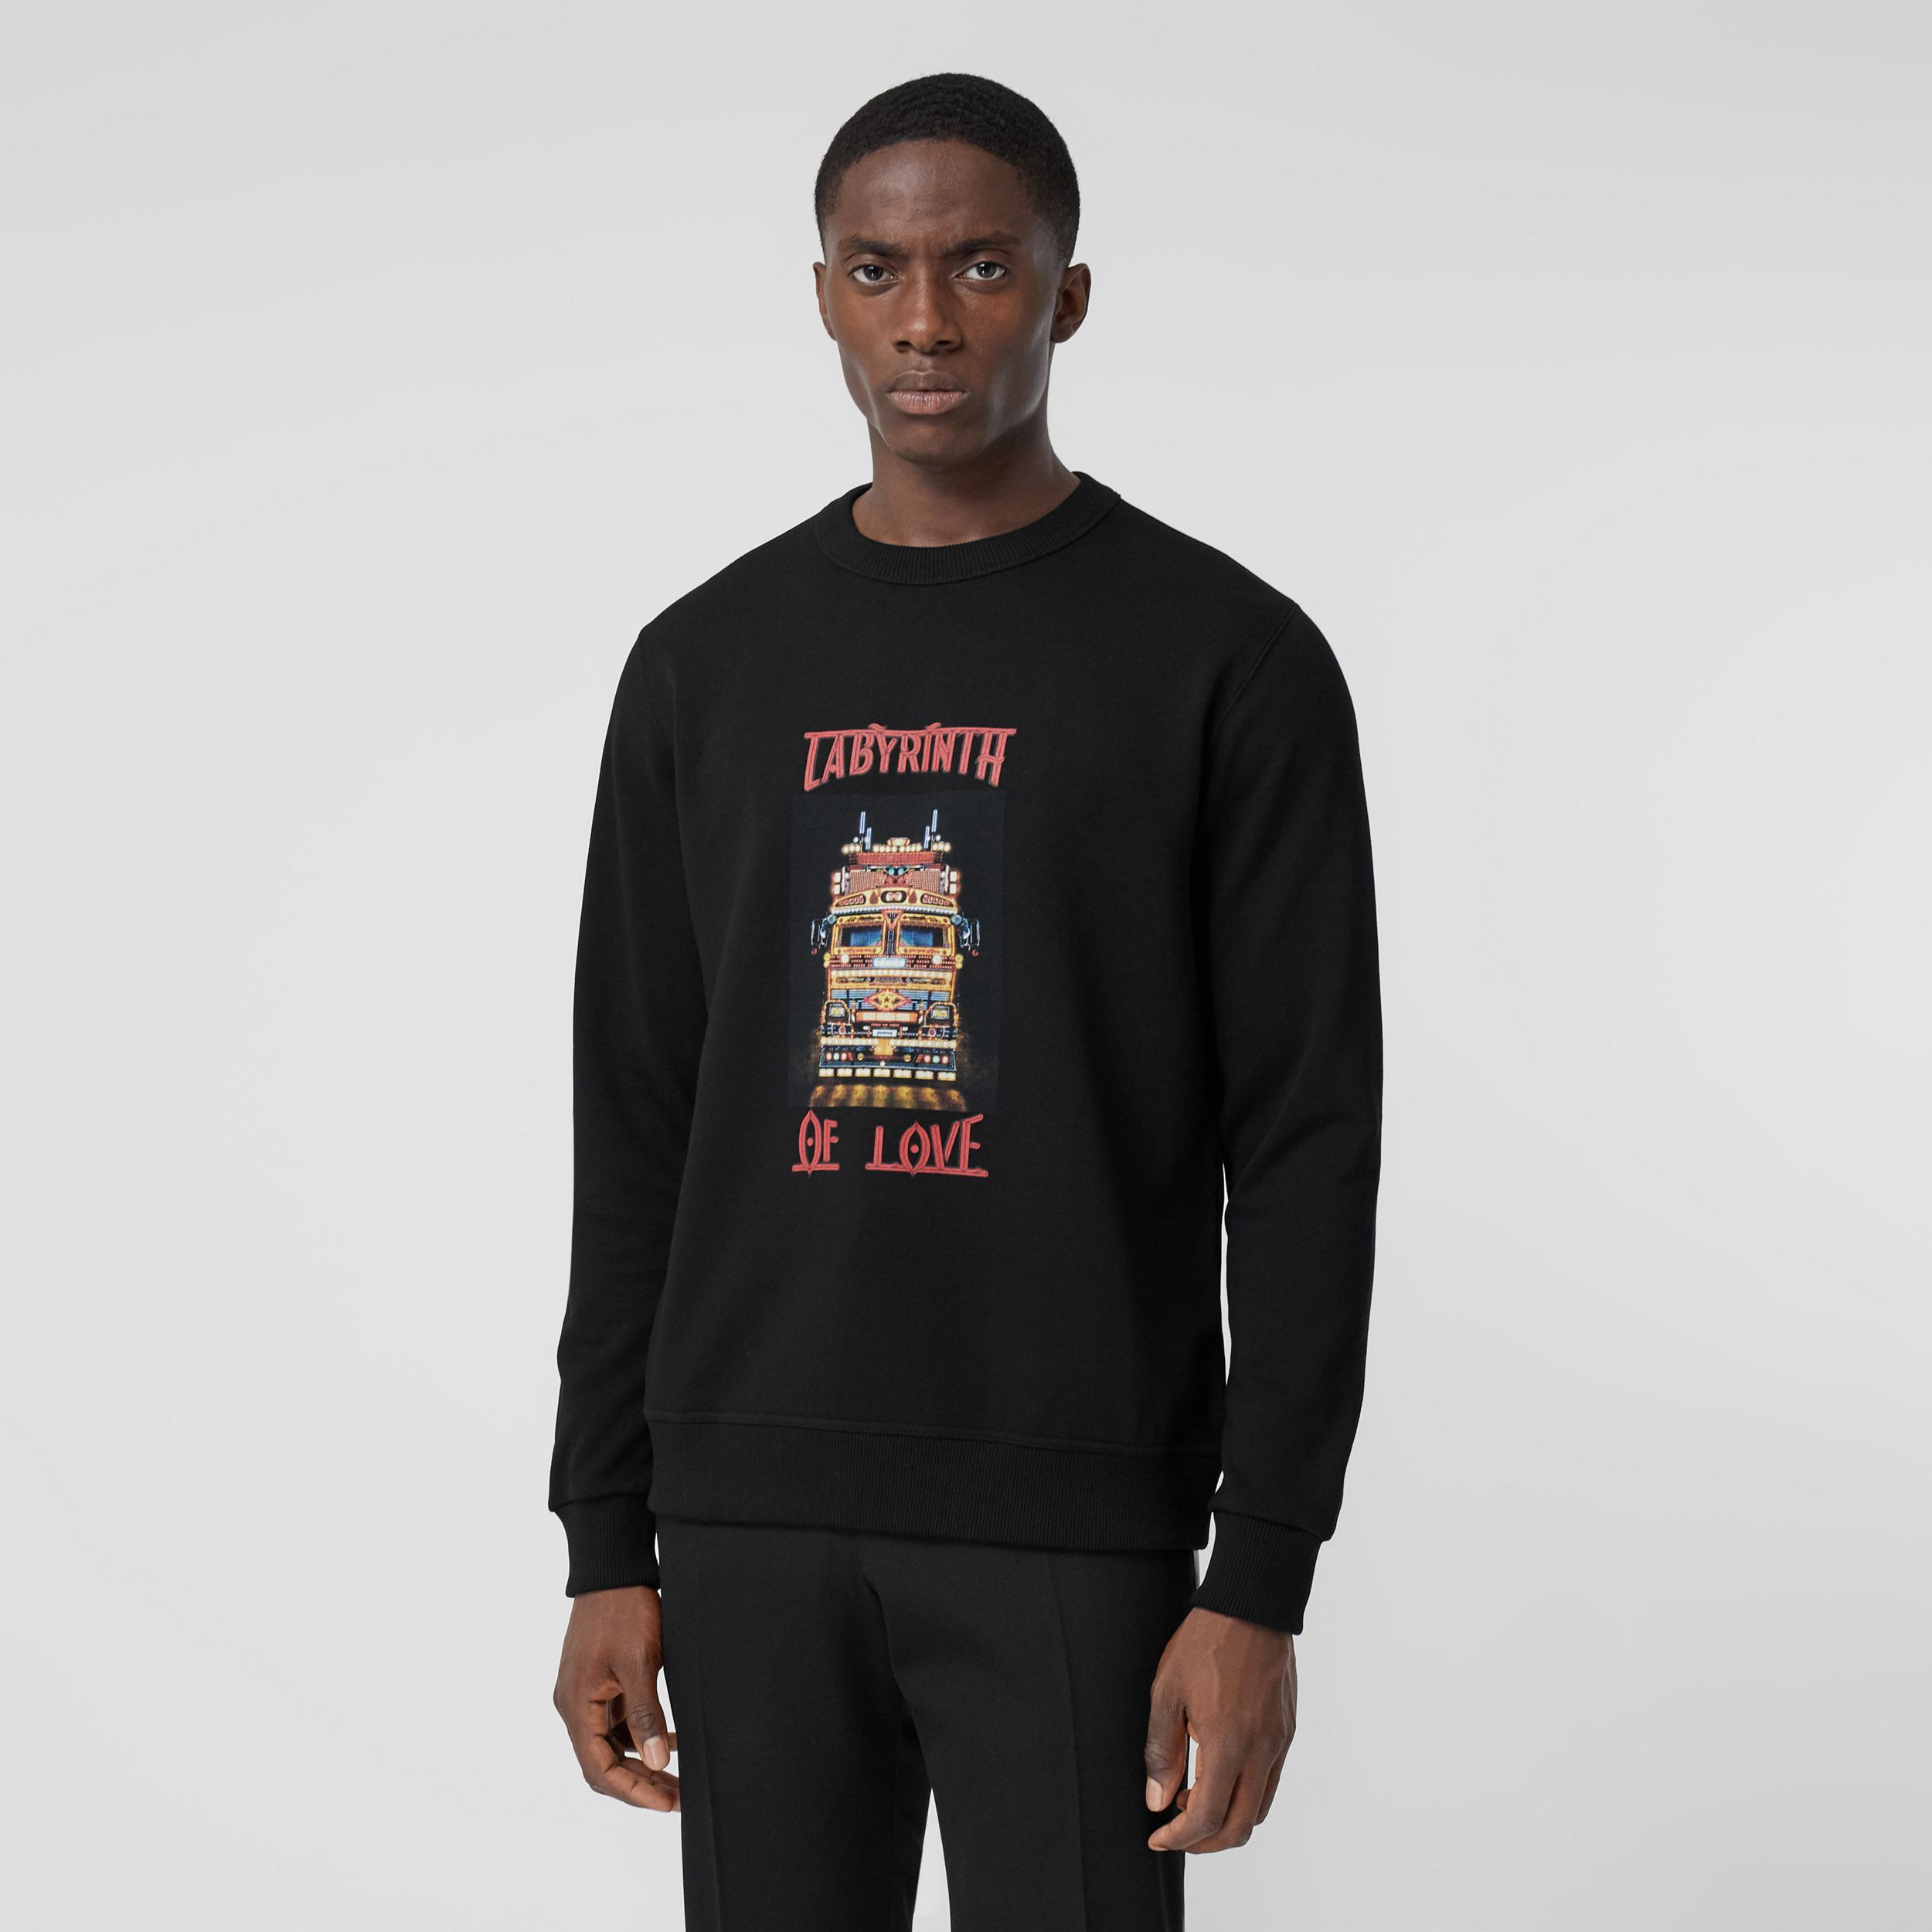 Slogan Print Cotton Sweatshirt in Black - Men | Burberry - 1